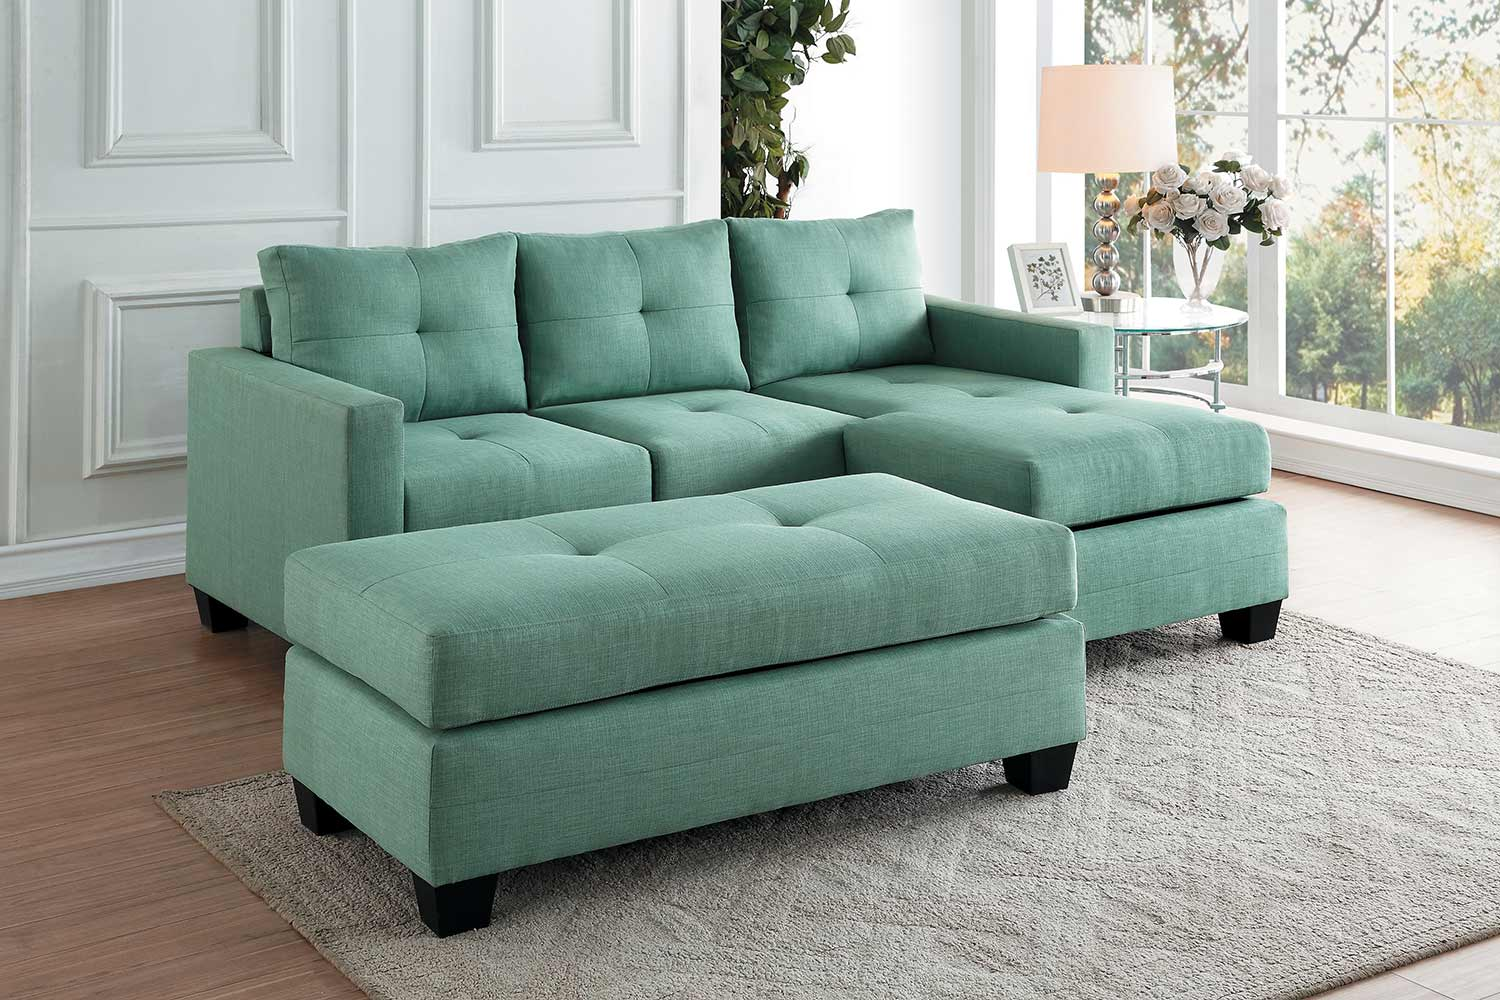 Homelegance Phelps Sectional Sofa Set - Teal